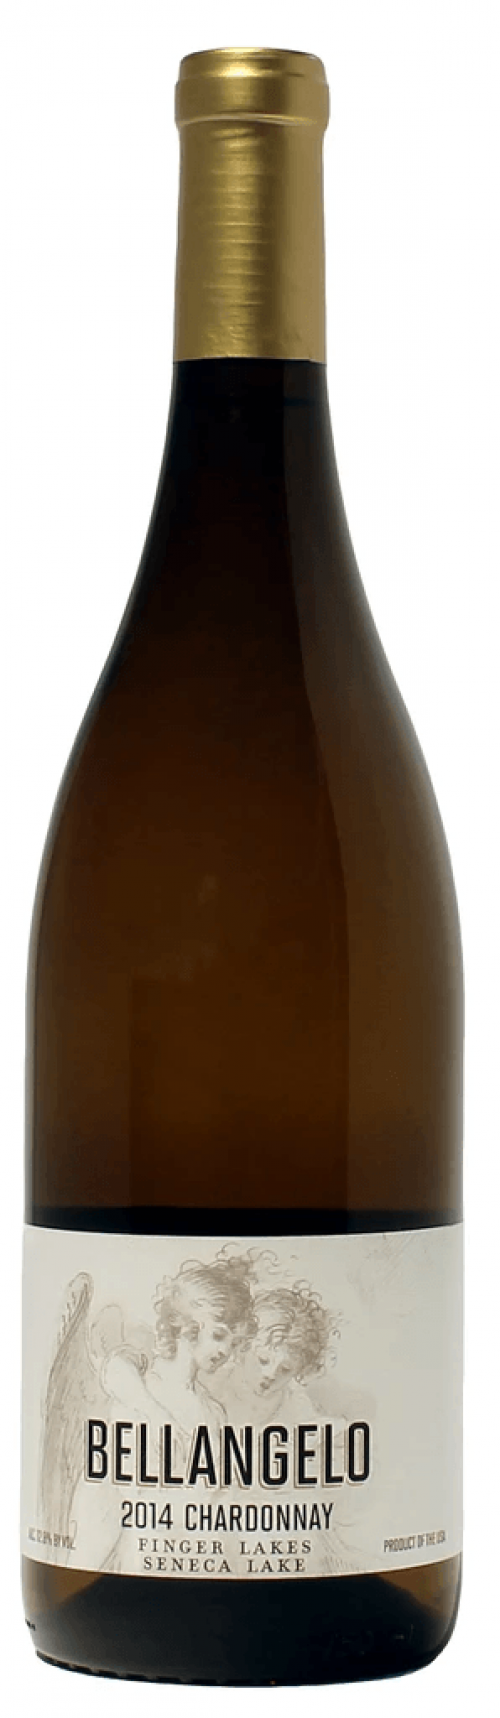 2014 Bellangelo Chardonnay 750ml